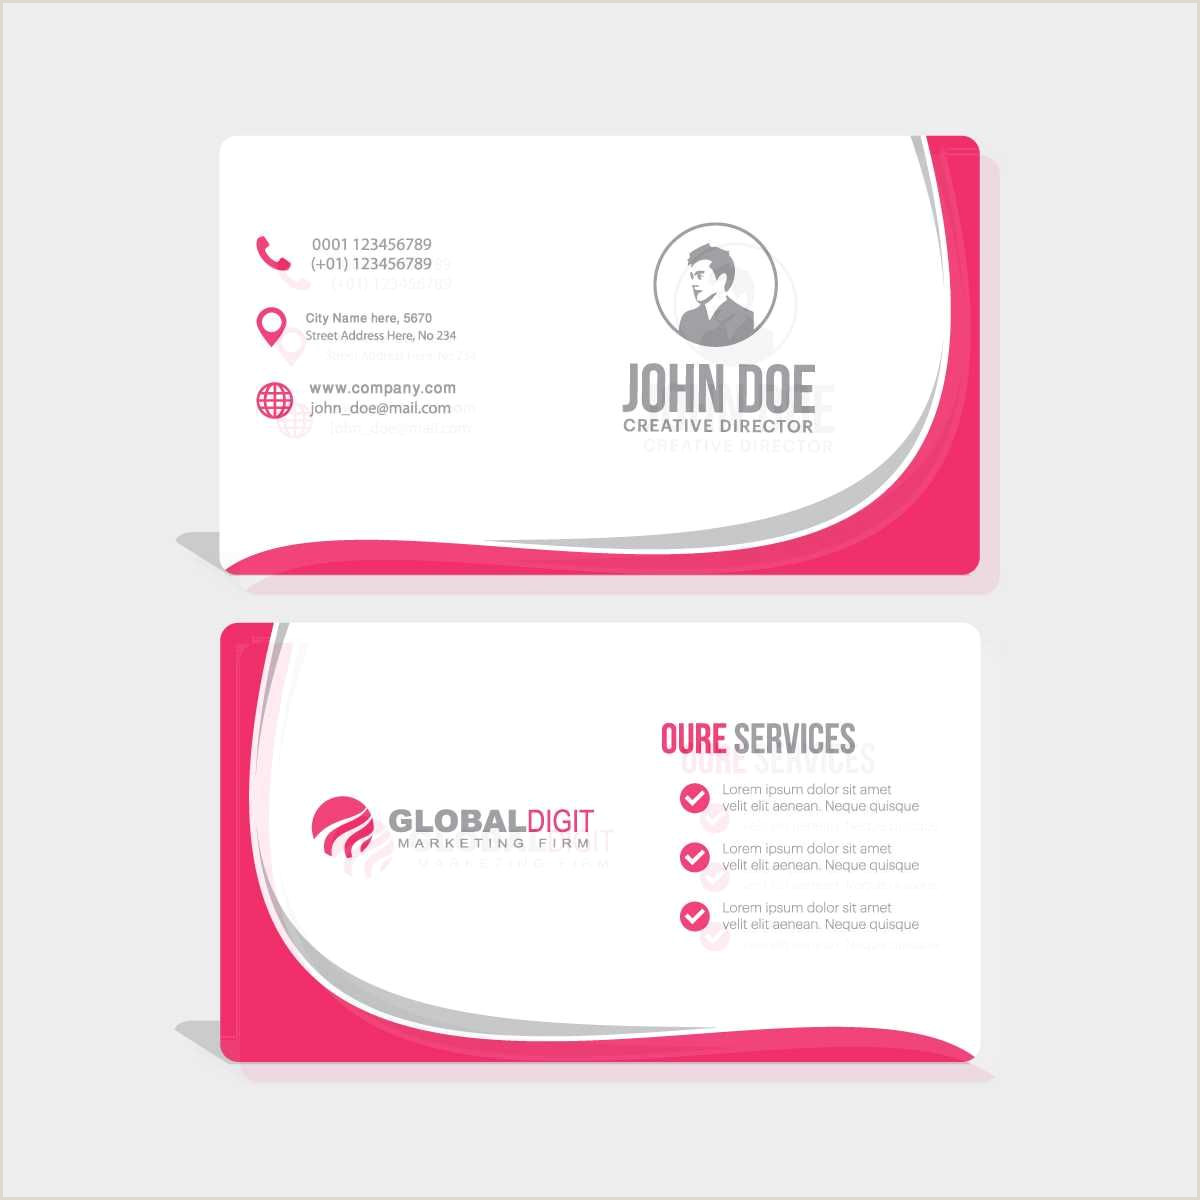 Business Cards Unique Shapes Business Card With Pink Wavy Shapes Free